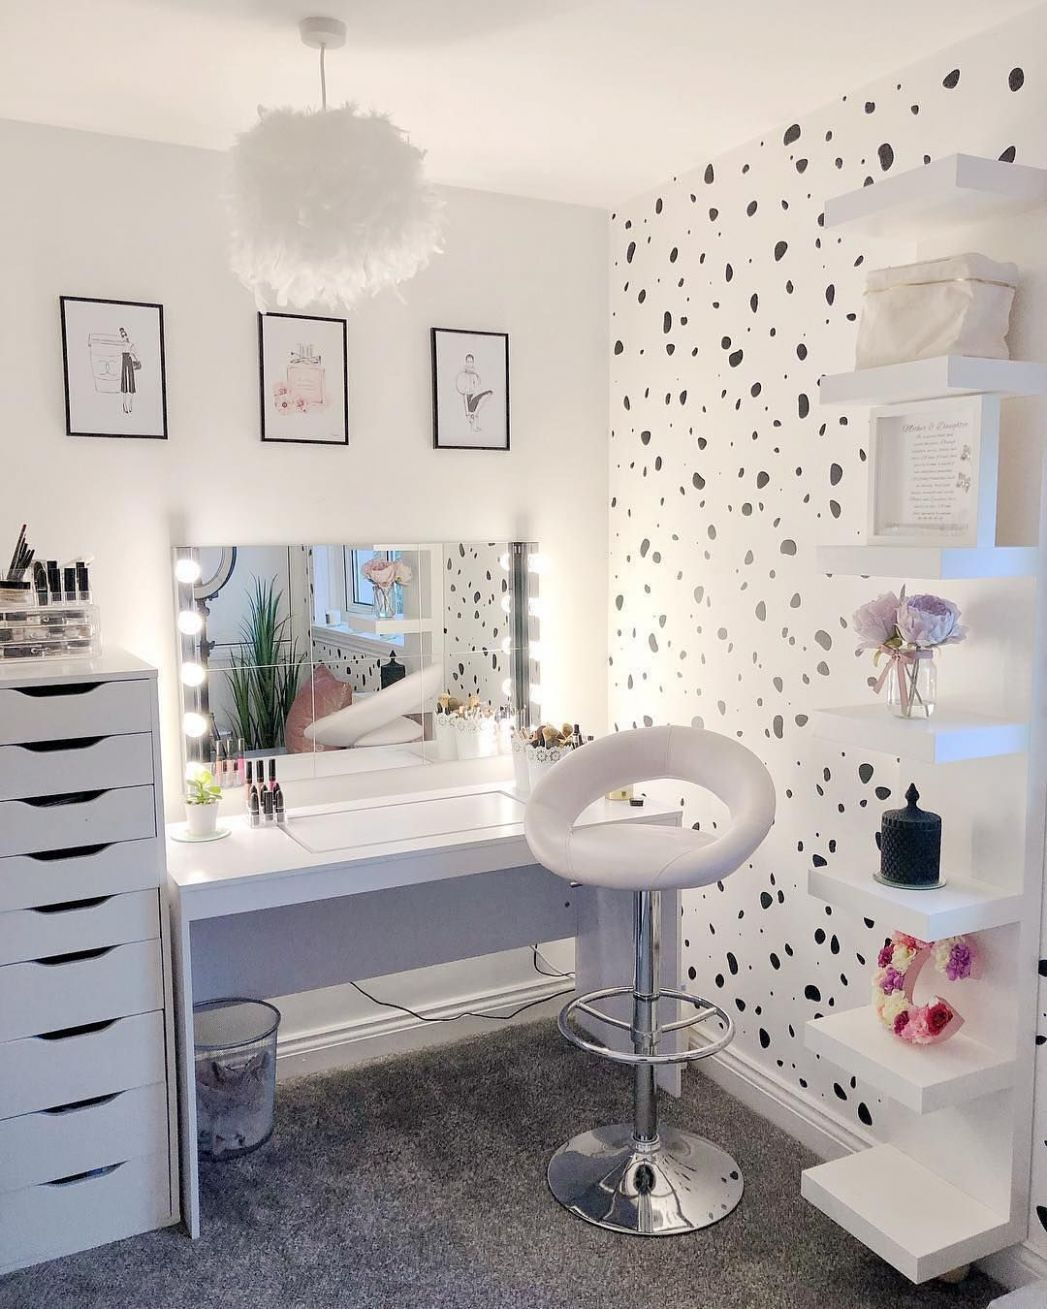 Pin on Dream house - makeup room inspo